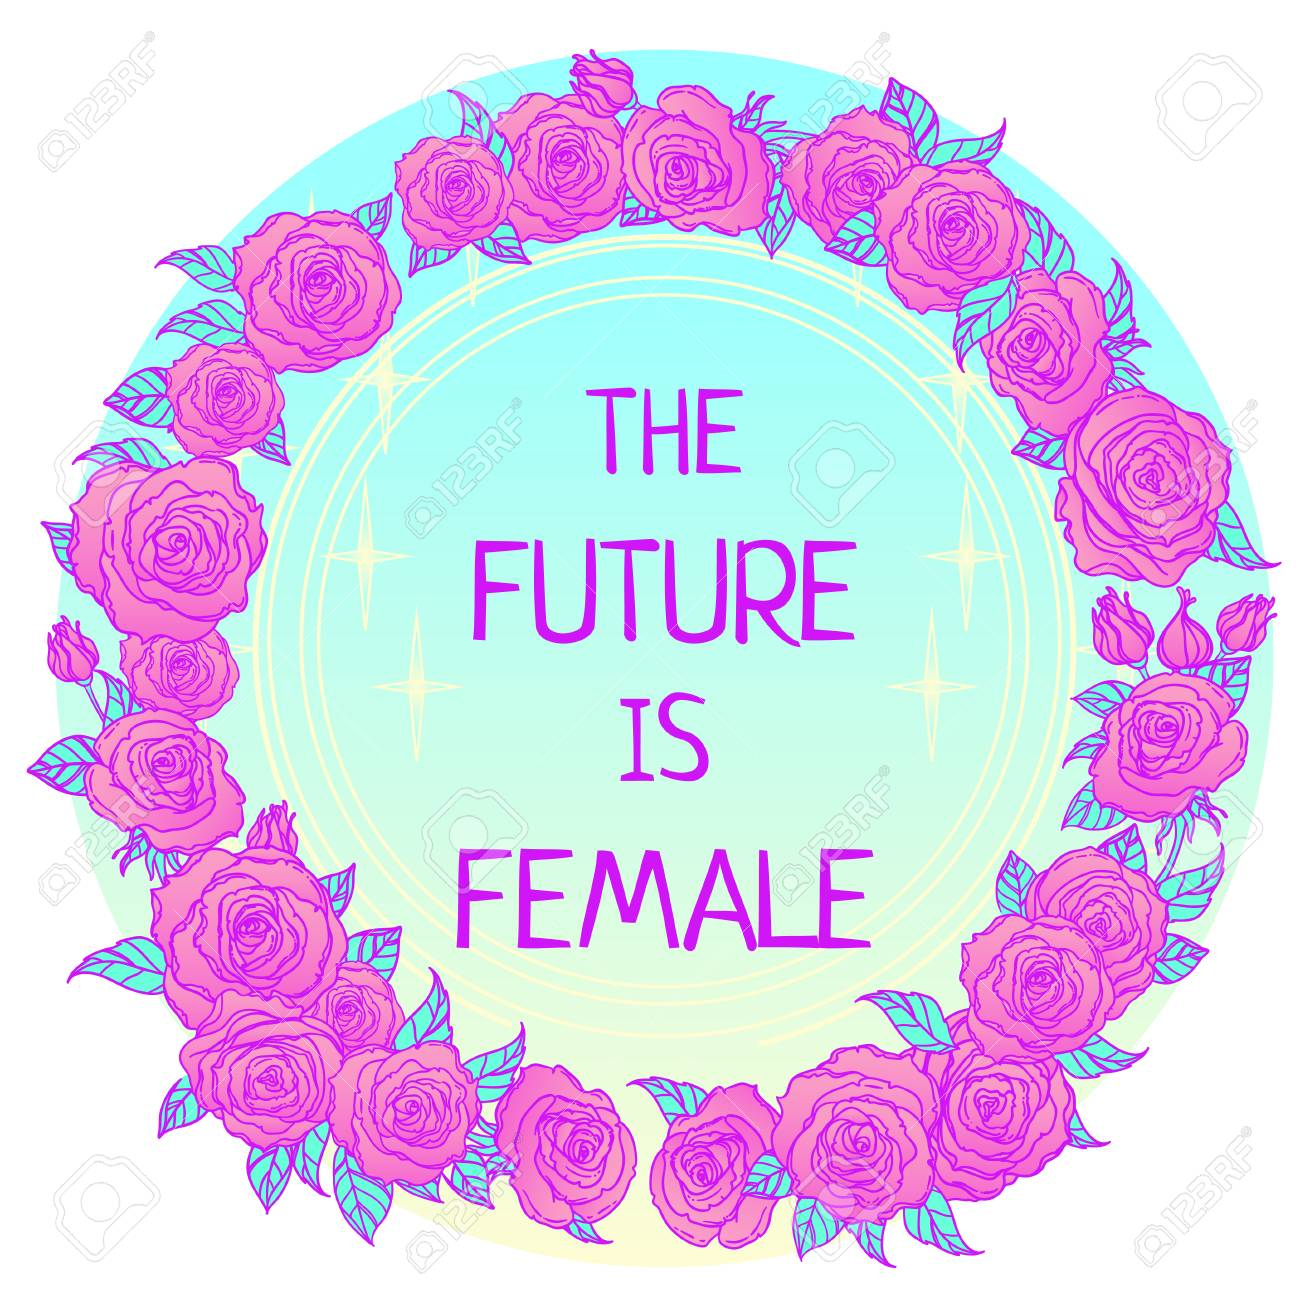 The future is female. Girl Power. Feminism concept. Realistic style vector illustration in pink pastel goth colors isolated on white. Sticker, patch graphic design. - 78878009